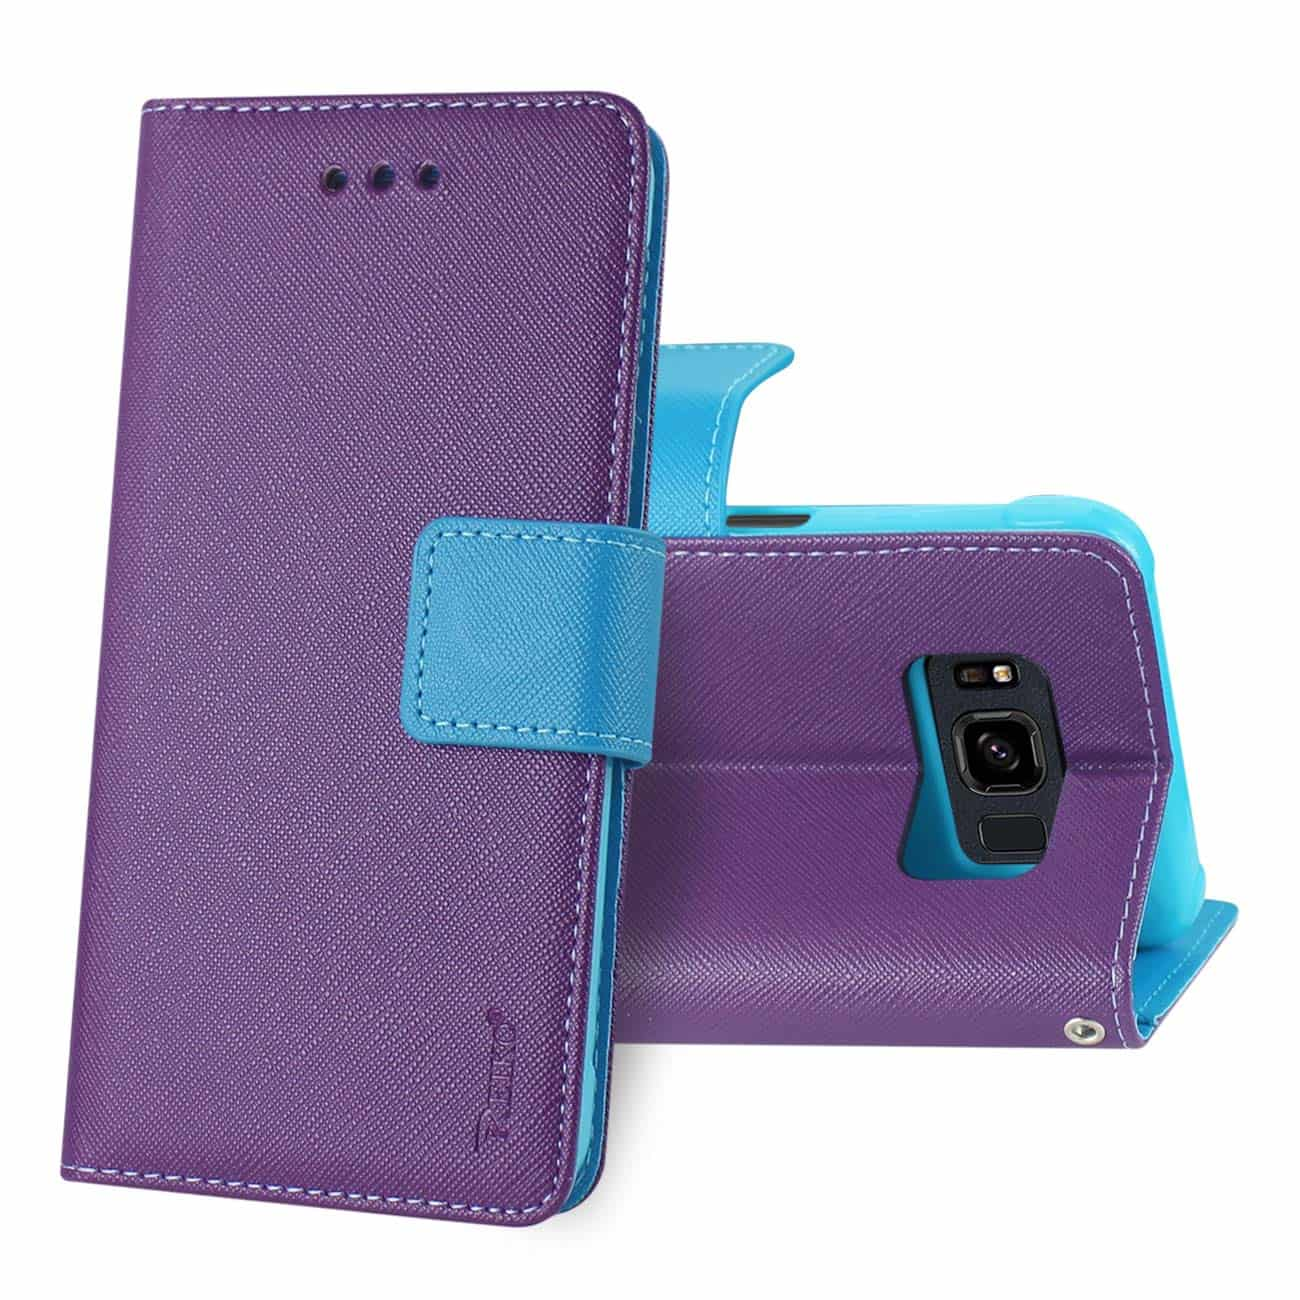 SAMSUNG GALAXY S8 ACTIVE 3-IN-1 WALLET CASE IN PURPLE